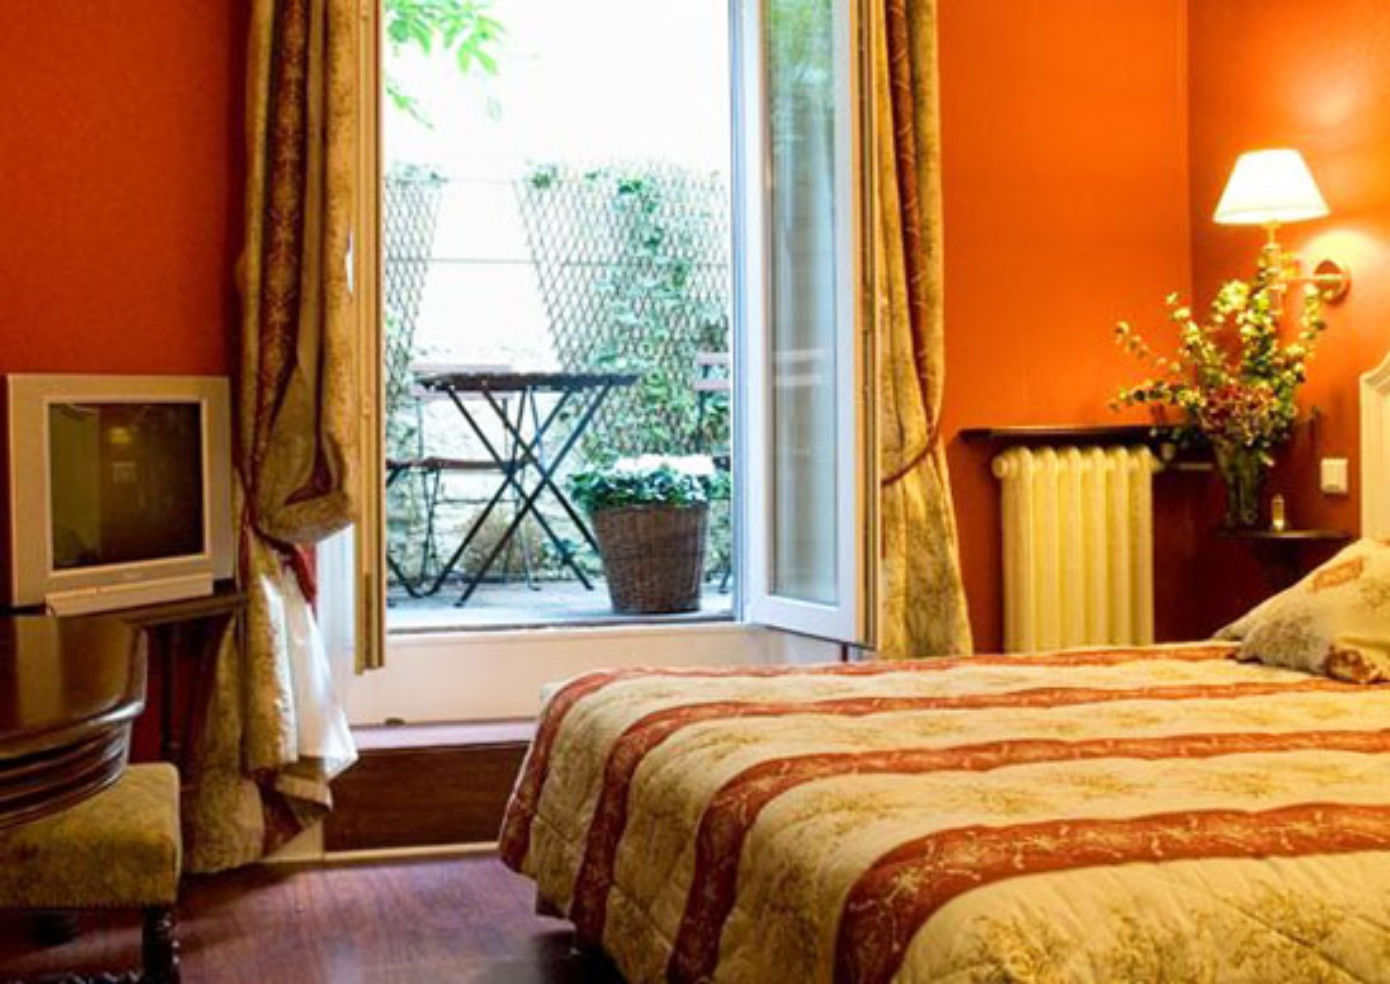 A double room at Hotel de la Porte Doree in Paris